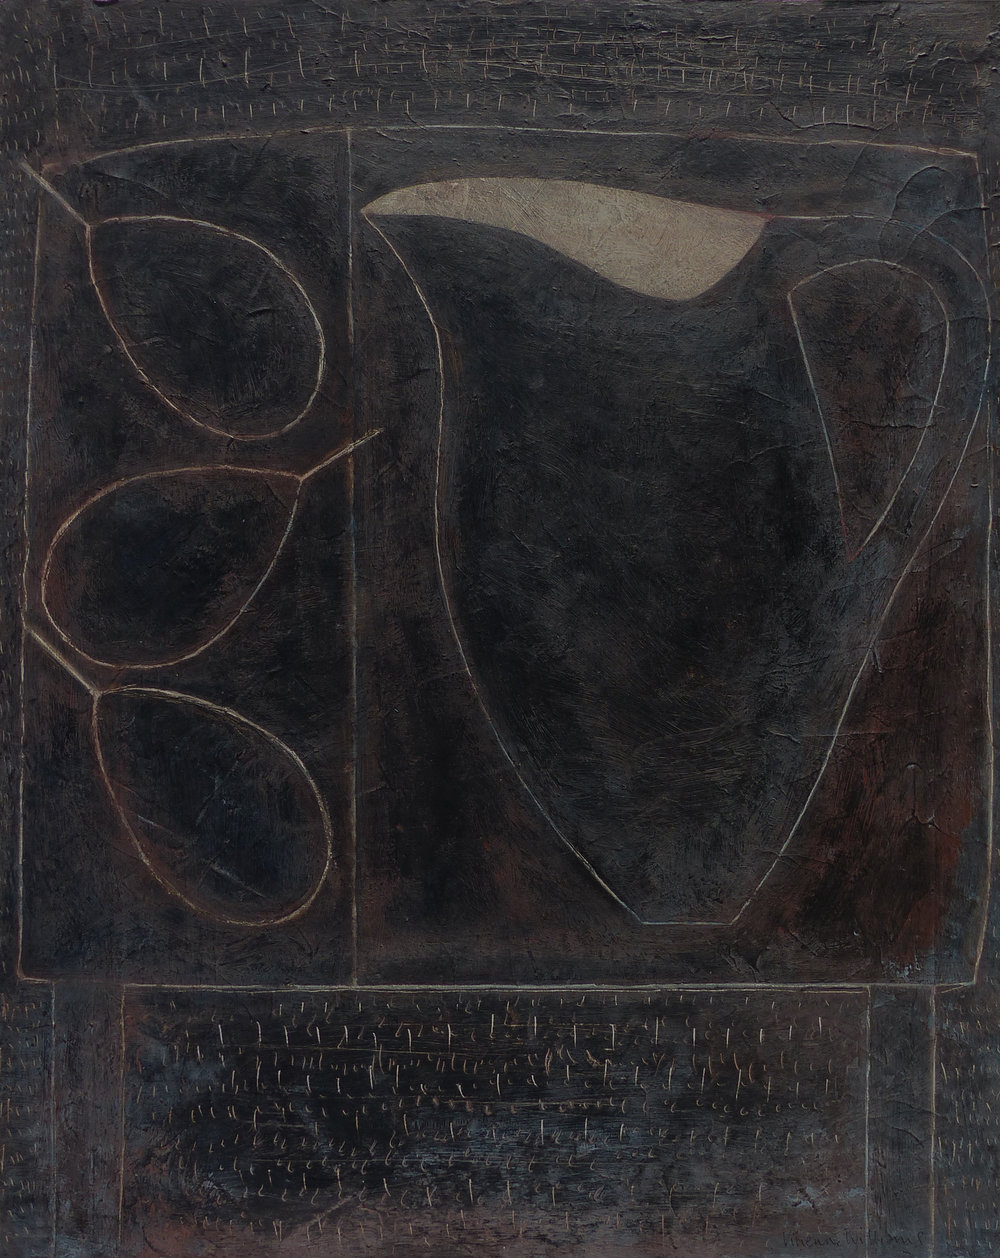 Blackboard Jug and Pears, 51cm x 41cm, 2018